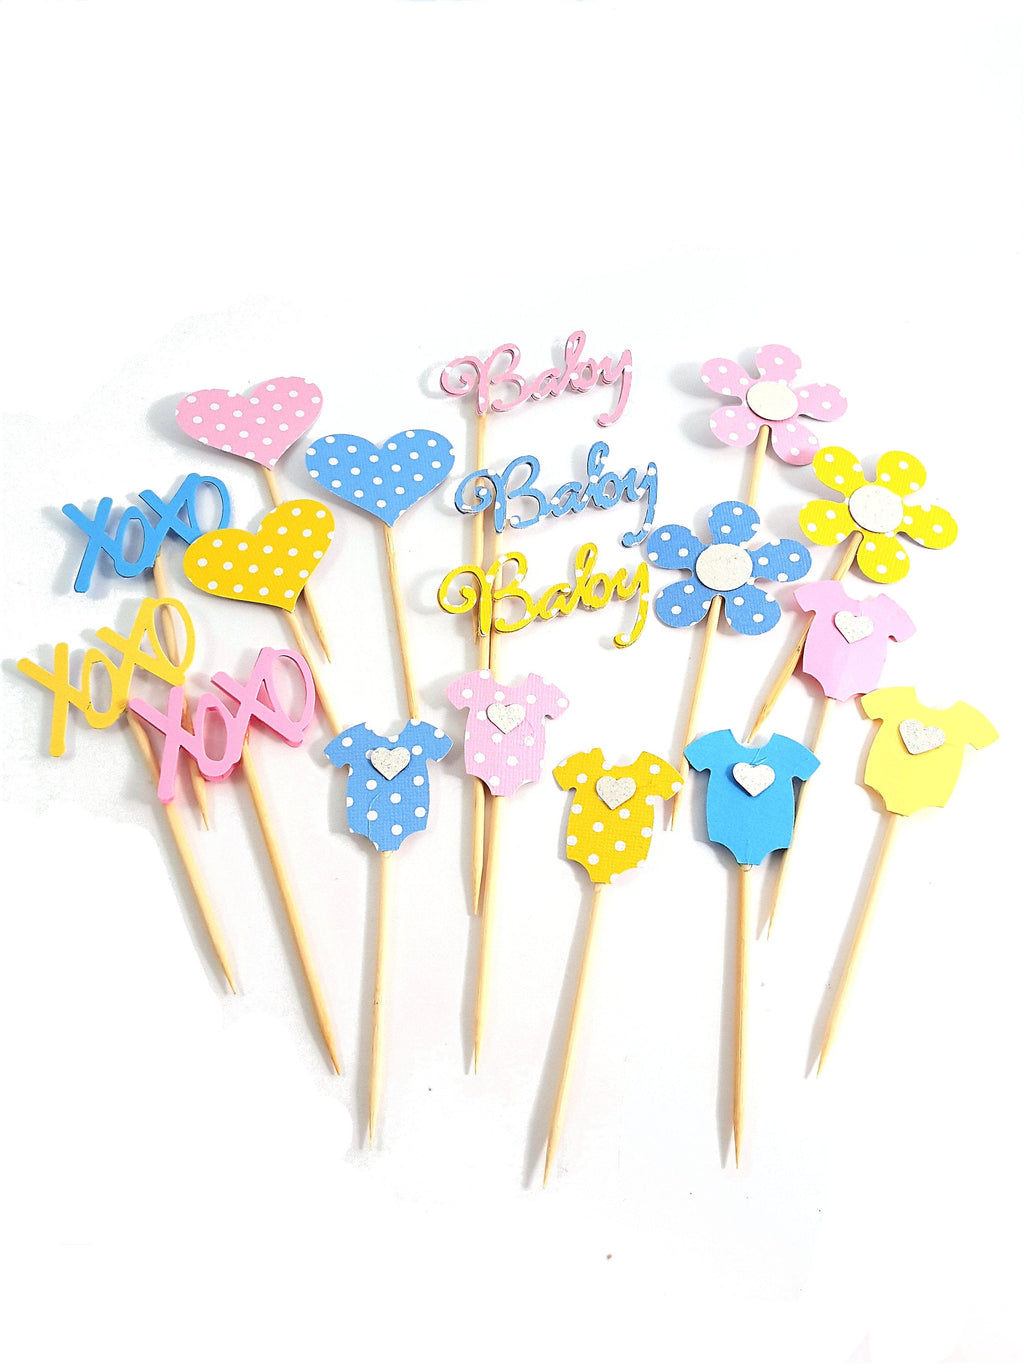 Your Choice of Assorted Polka Dotted and Solid Pink, Blue and Yellow  Cupcake toppers  for baby shower